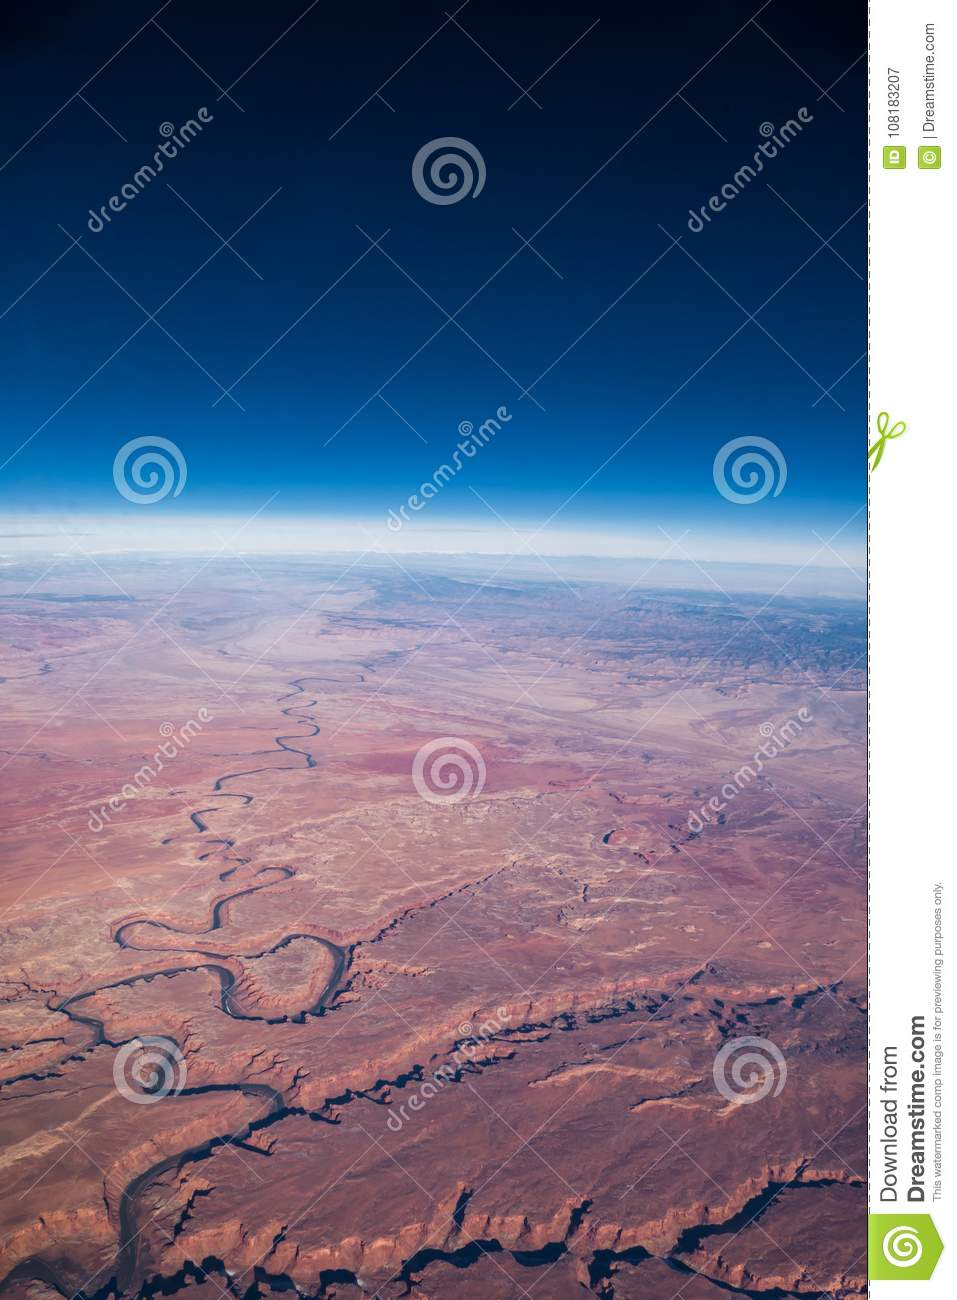 Aerial View Of Curvature Of Earth Across Red Desert Stock Image